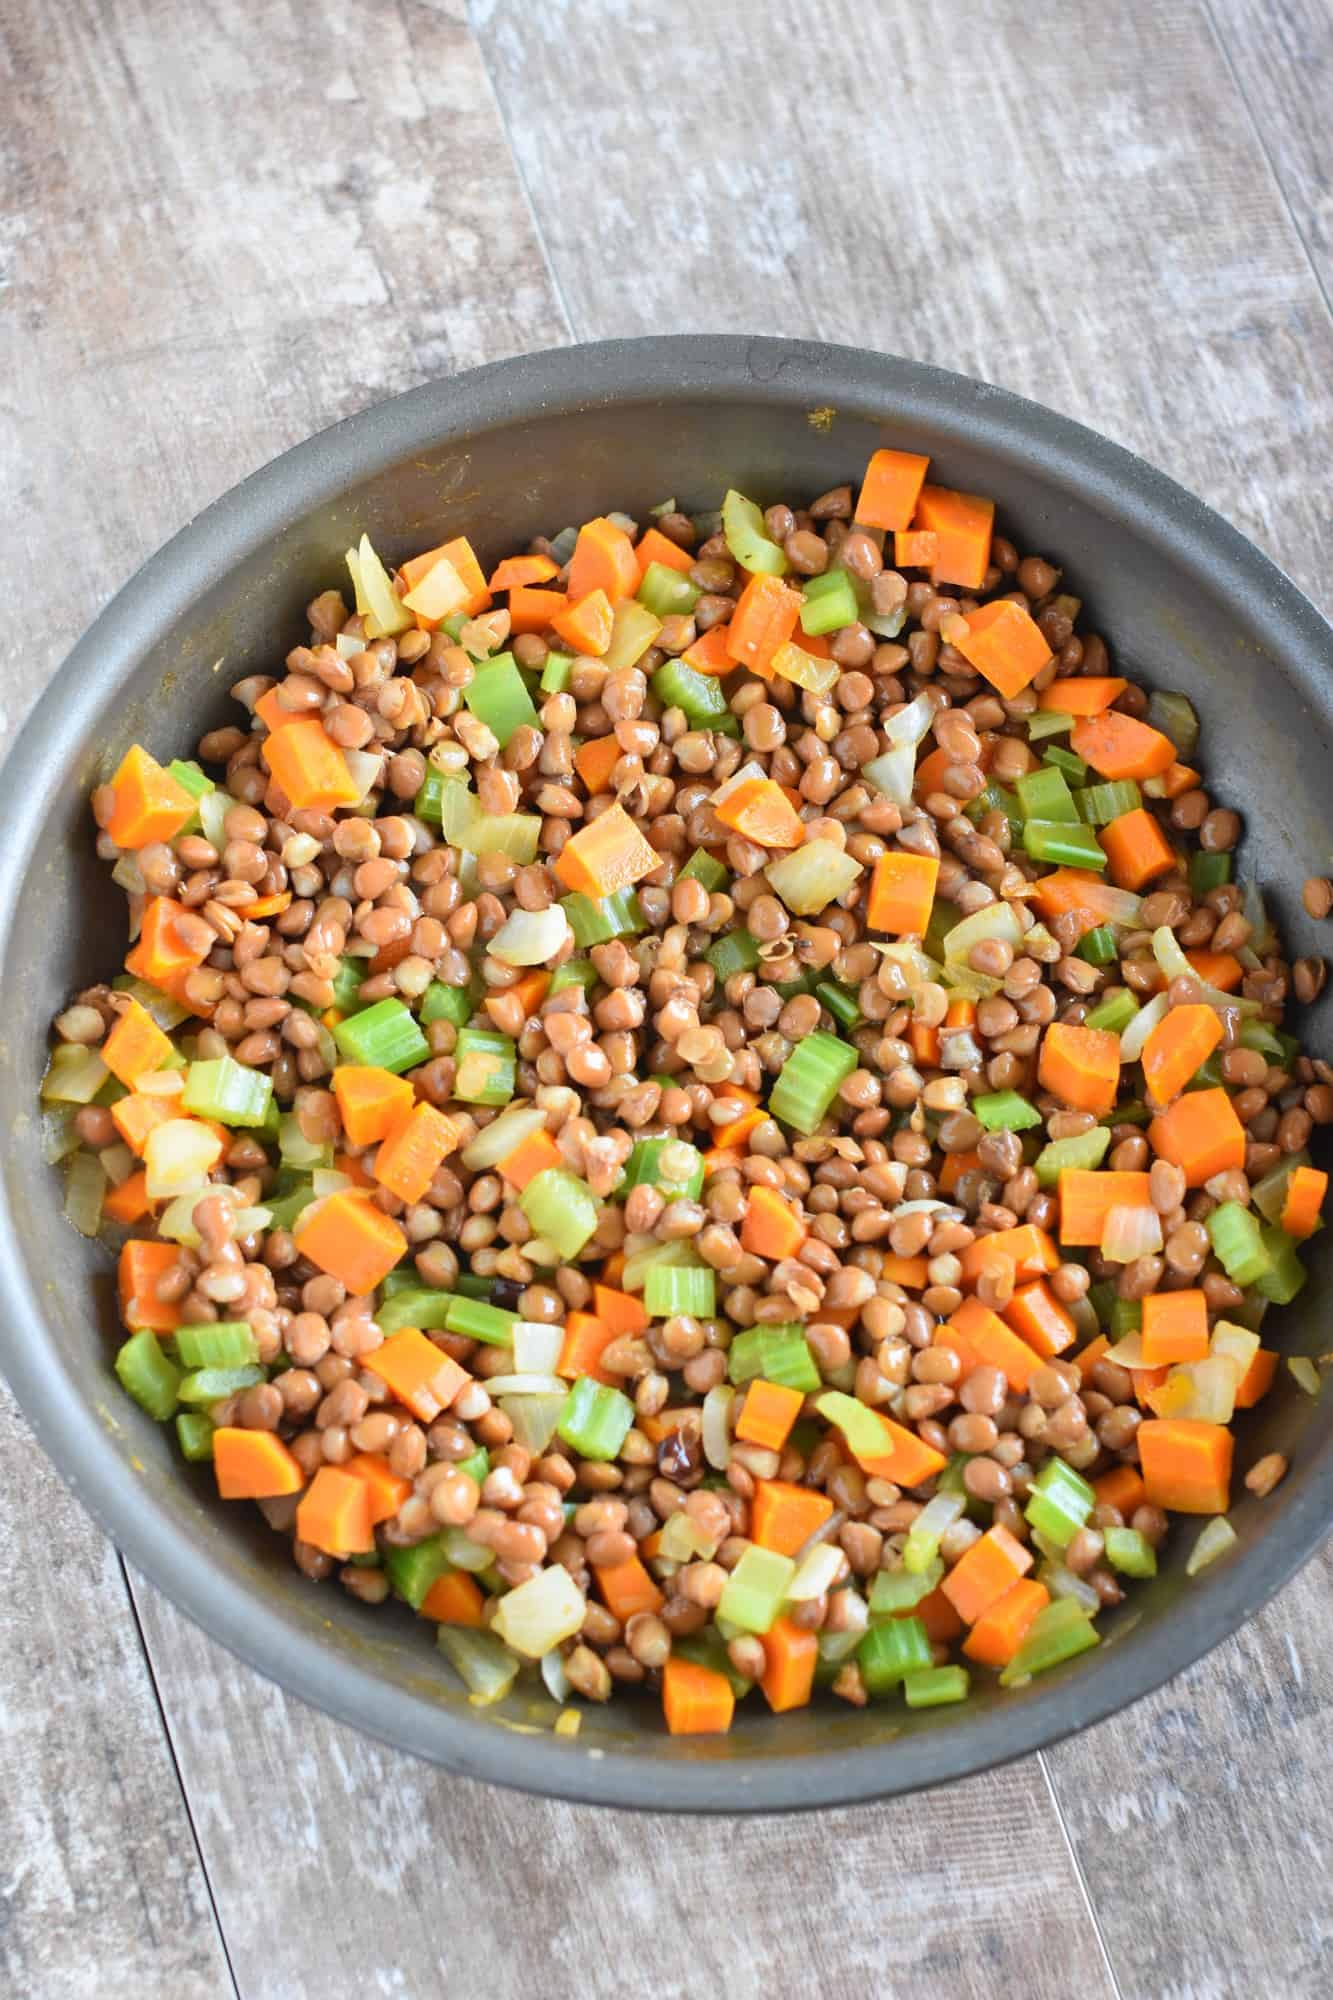 Lentils stirred into the veggie mixture in the skillet